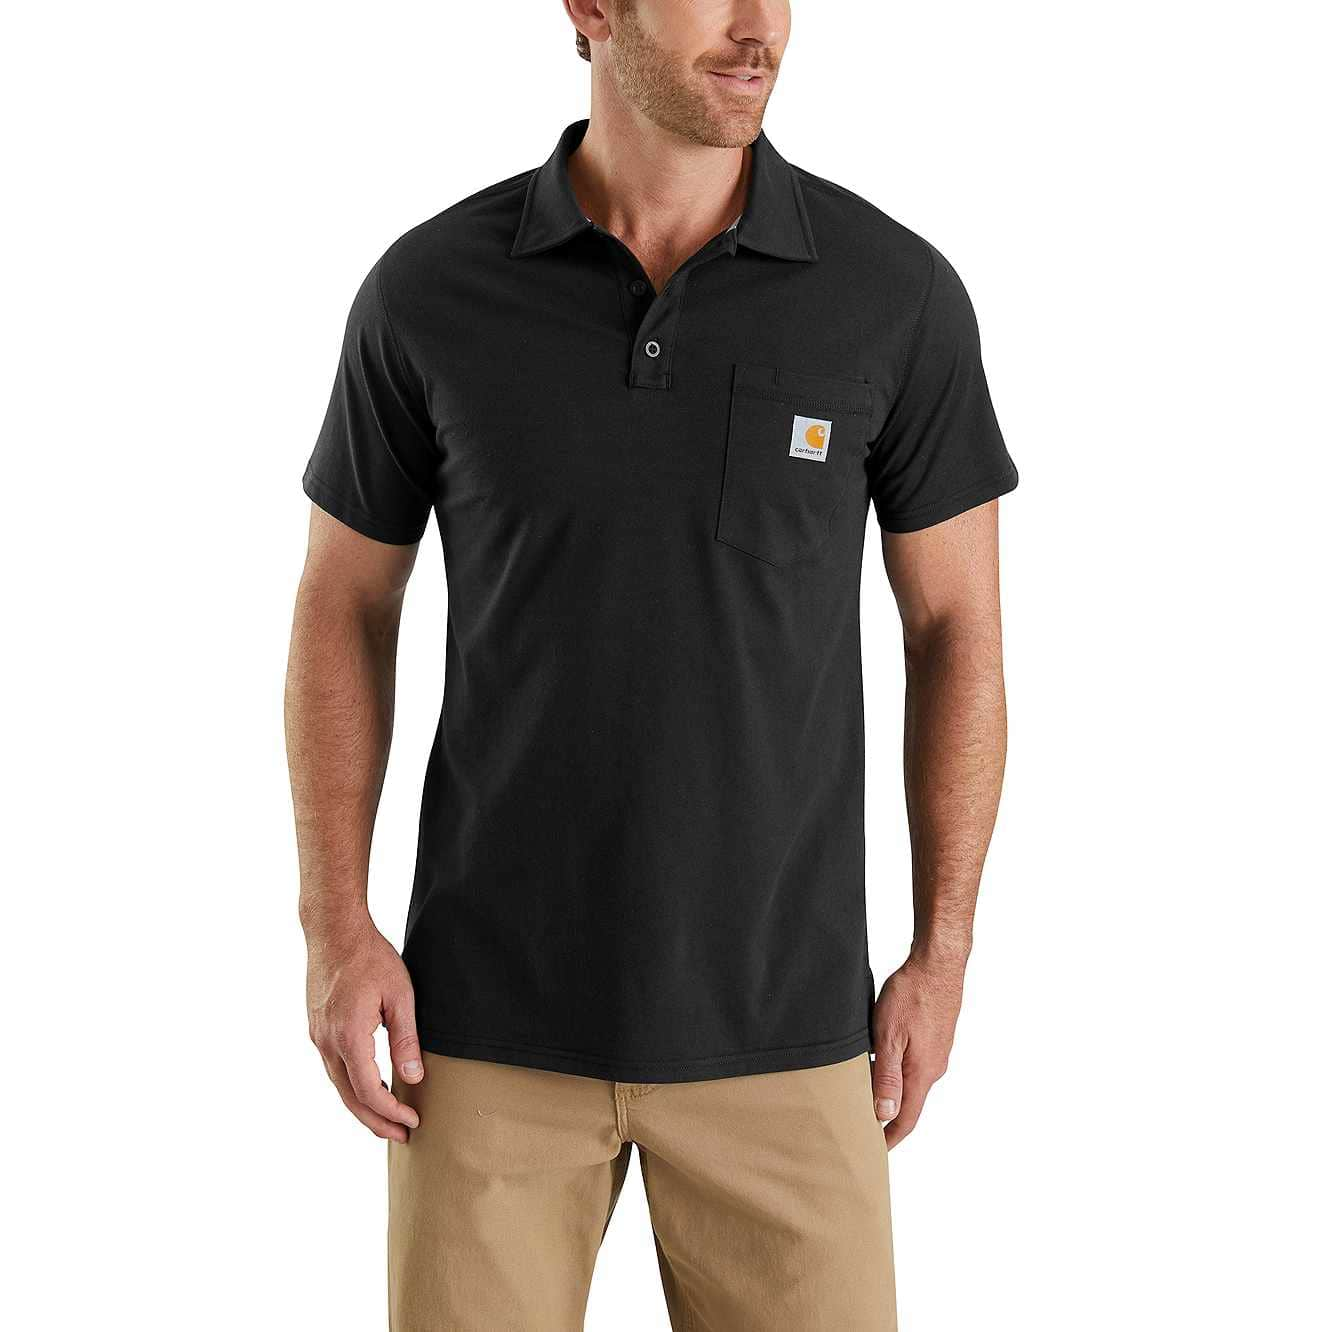 Picture of Carhartt Force® Cotton Delmont Pocket Polo in Black